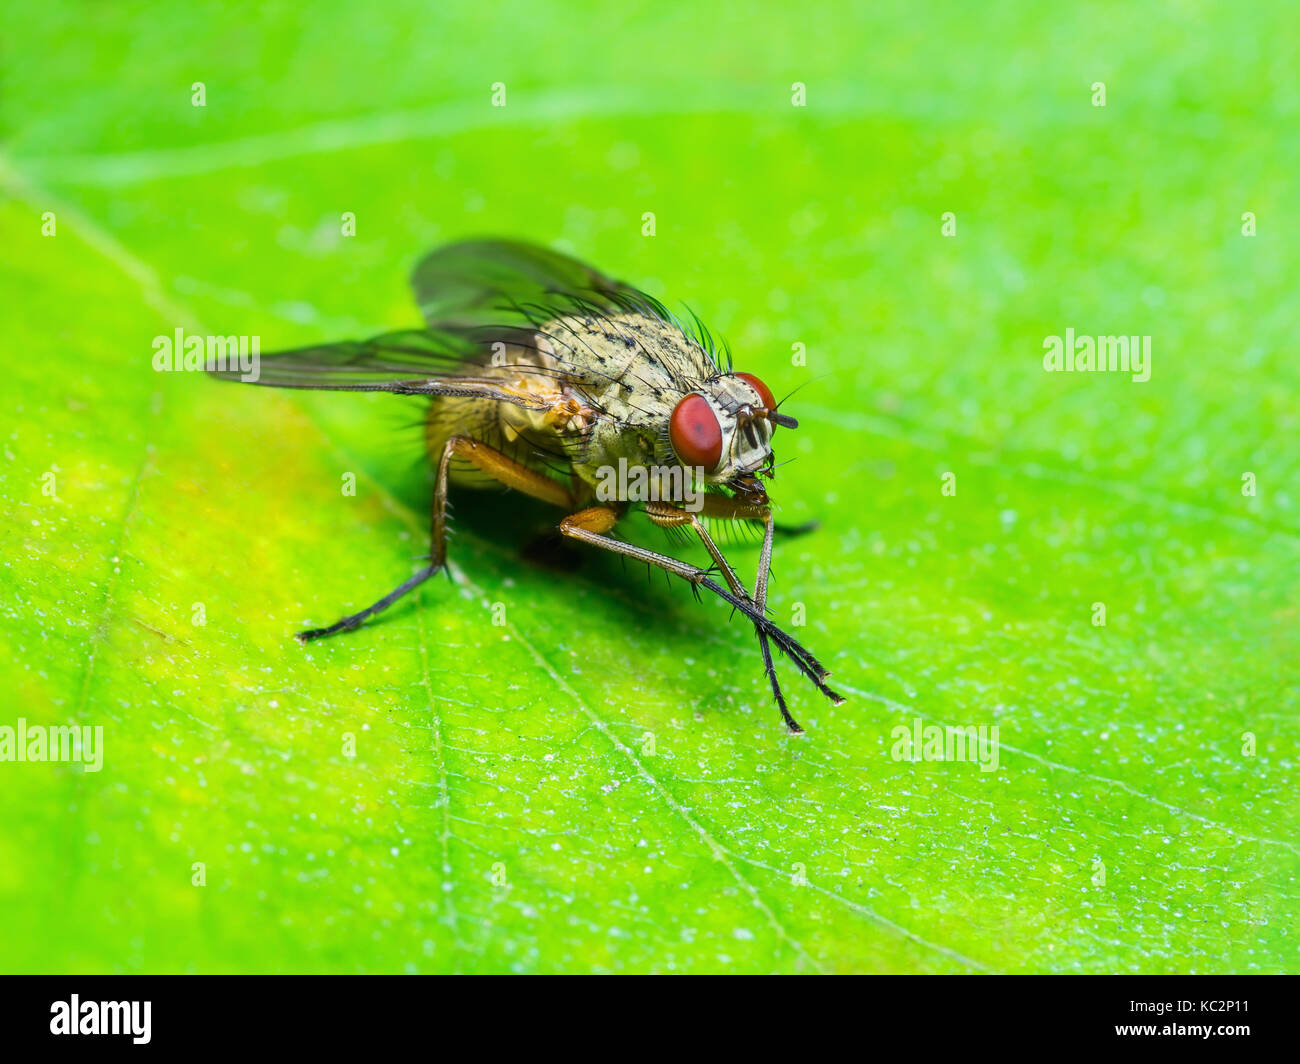 Fruit Fly Stock Photos & Fruit Fly Stock Images - Alamy